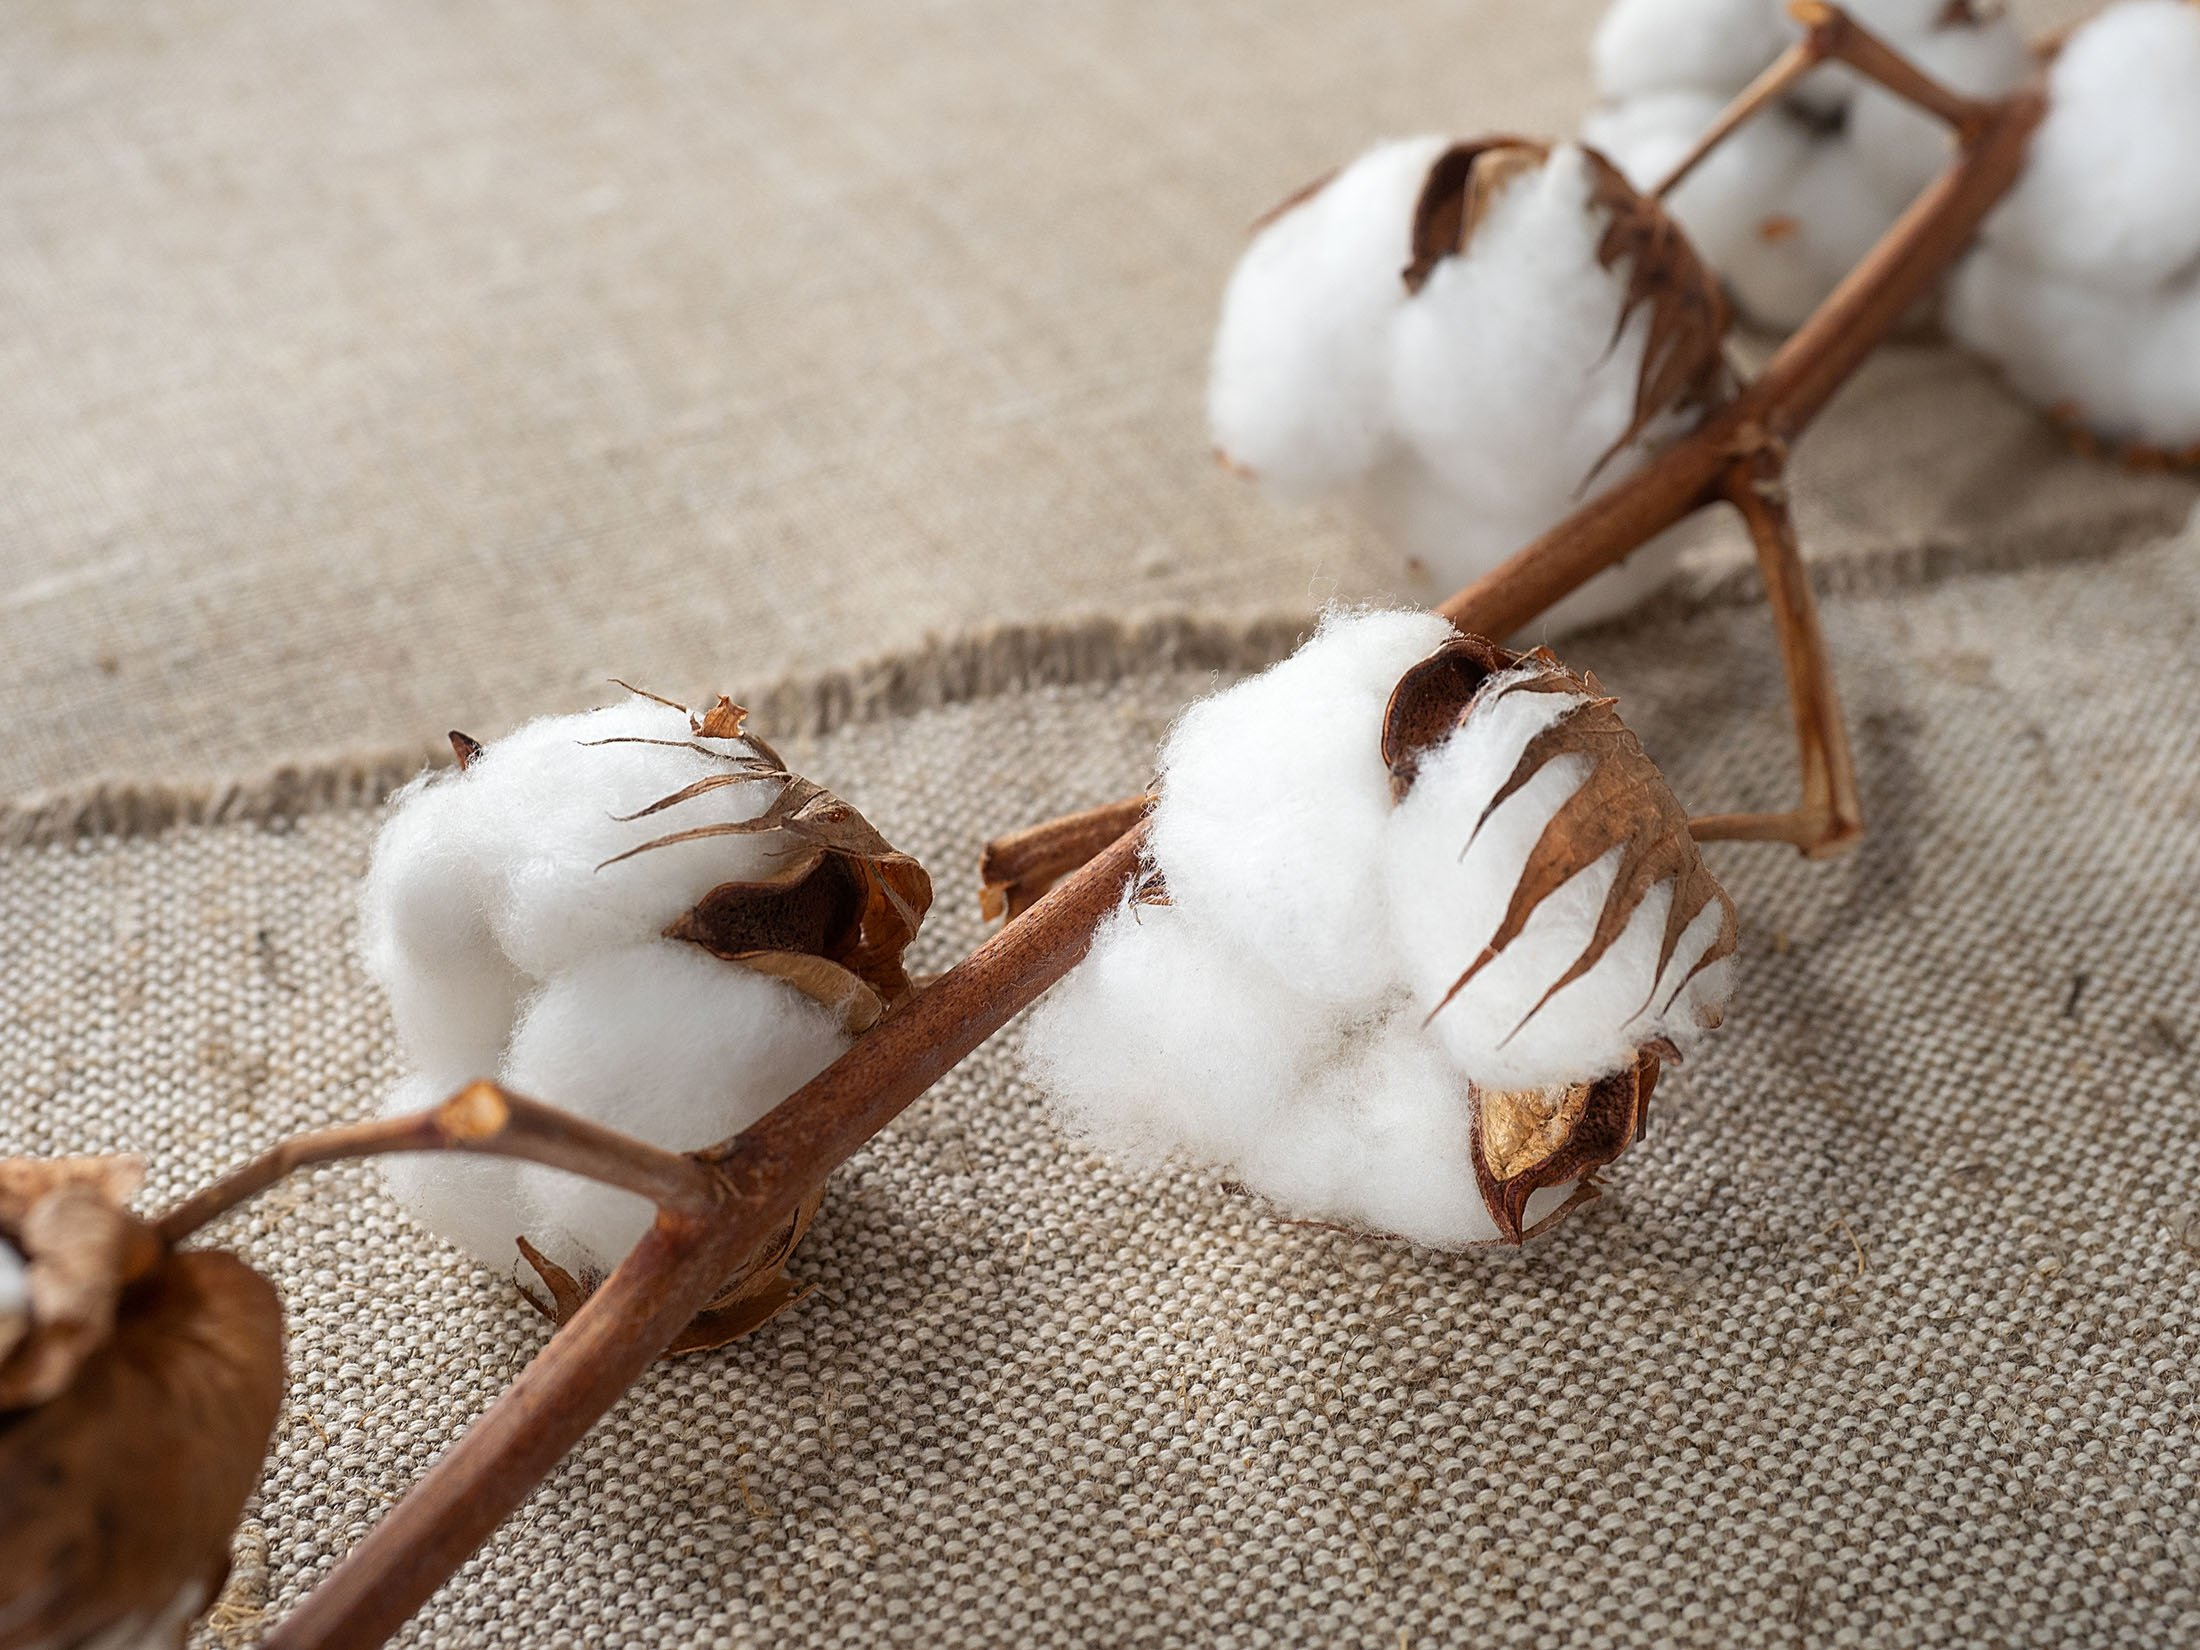 Made from the natural fibers of cotton plants, the fabric cotton is a biodegradable material. (Shutterstock Photo)